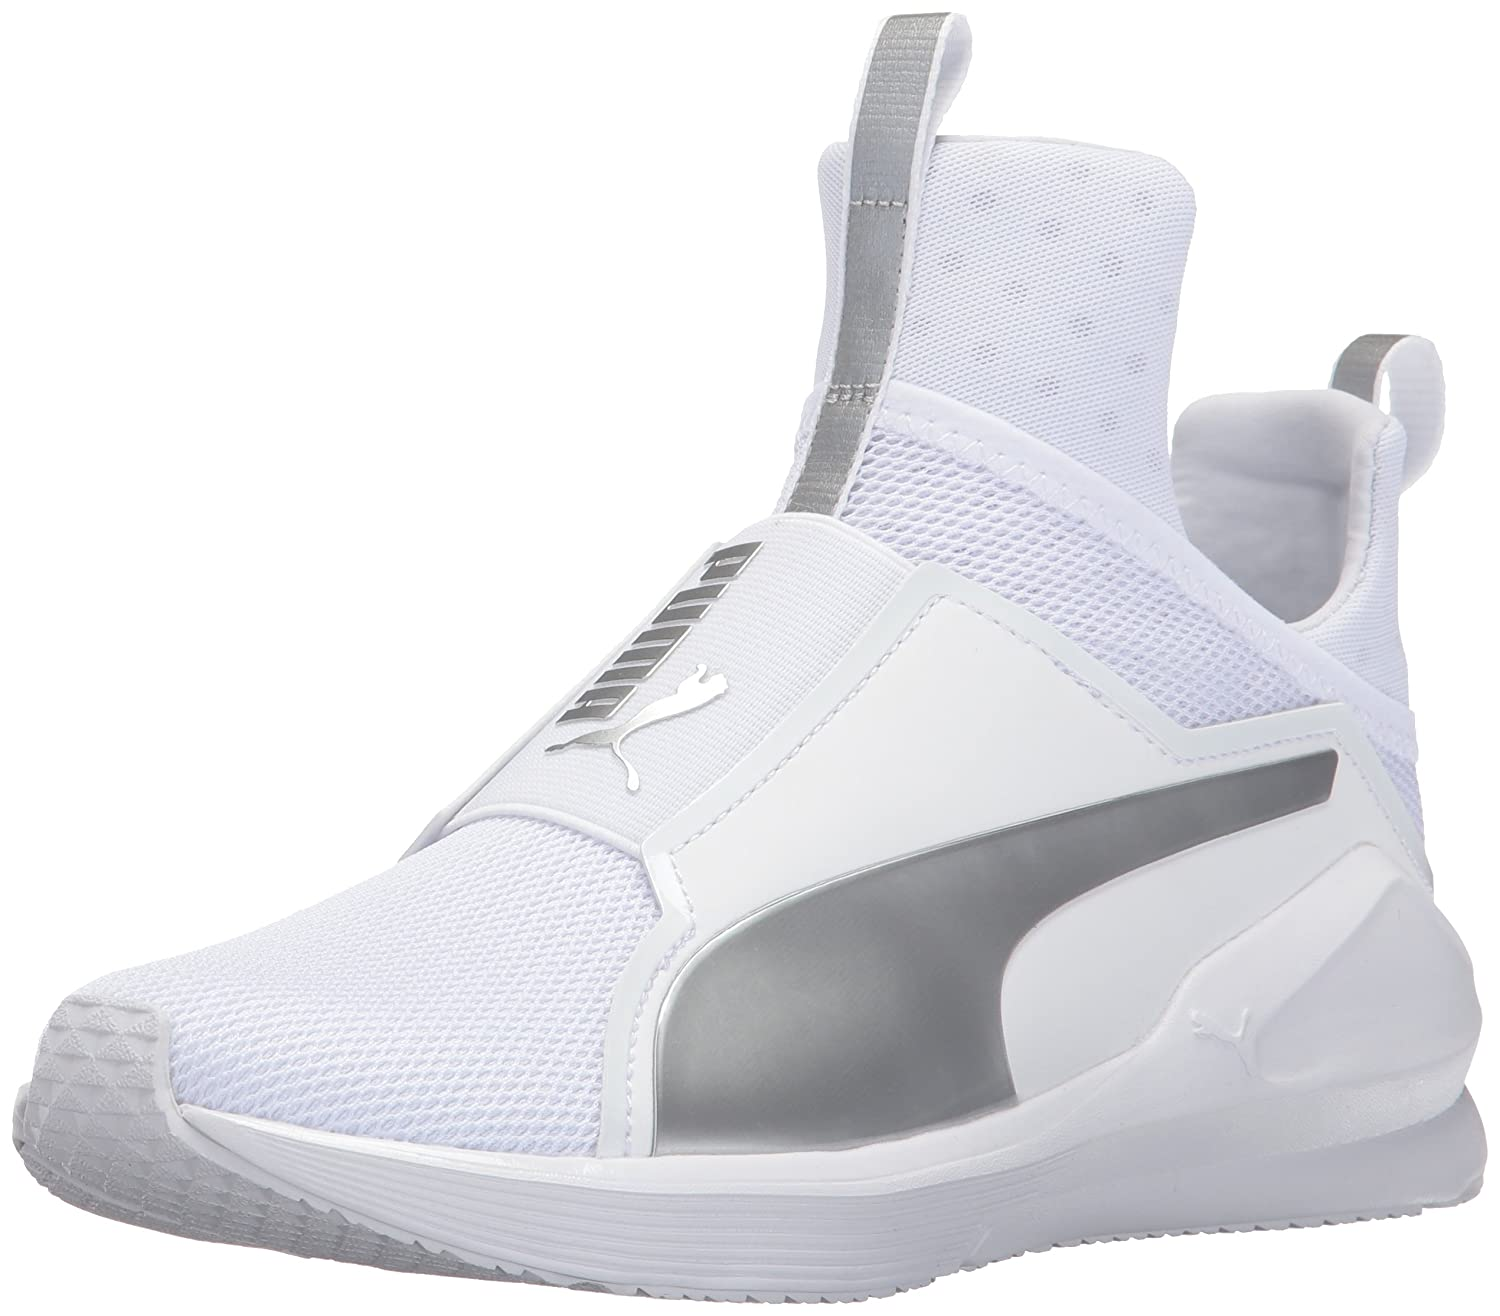 PUMA Women's Fierce Core Cross-Trainer Shoe B01MZ0E0IG 6.5 B(M) US|Puma White-puma Silver